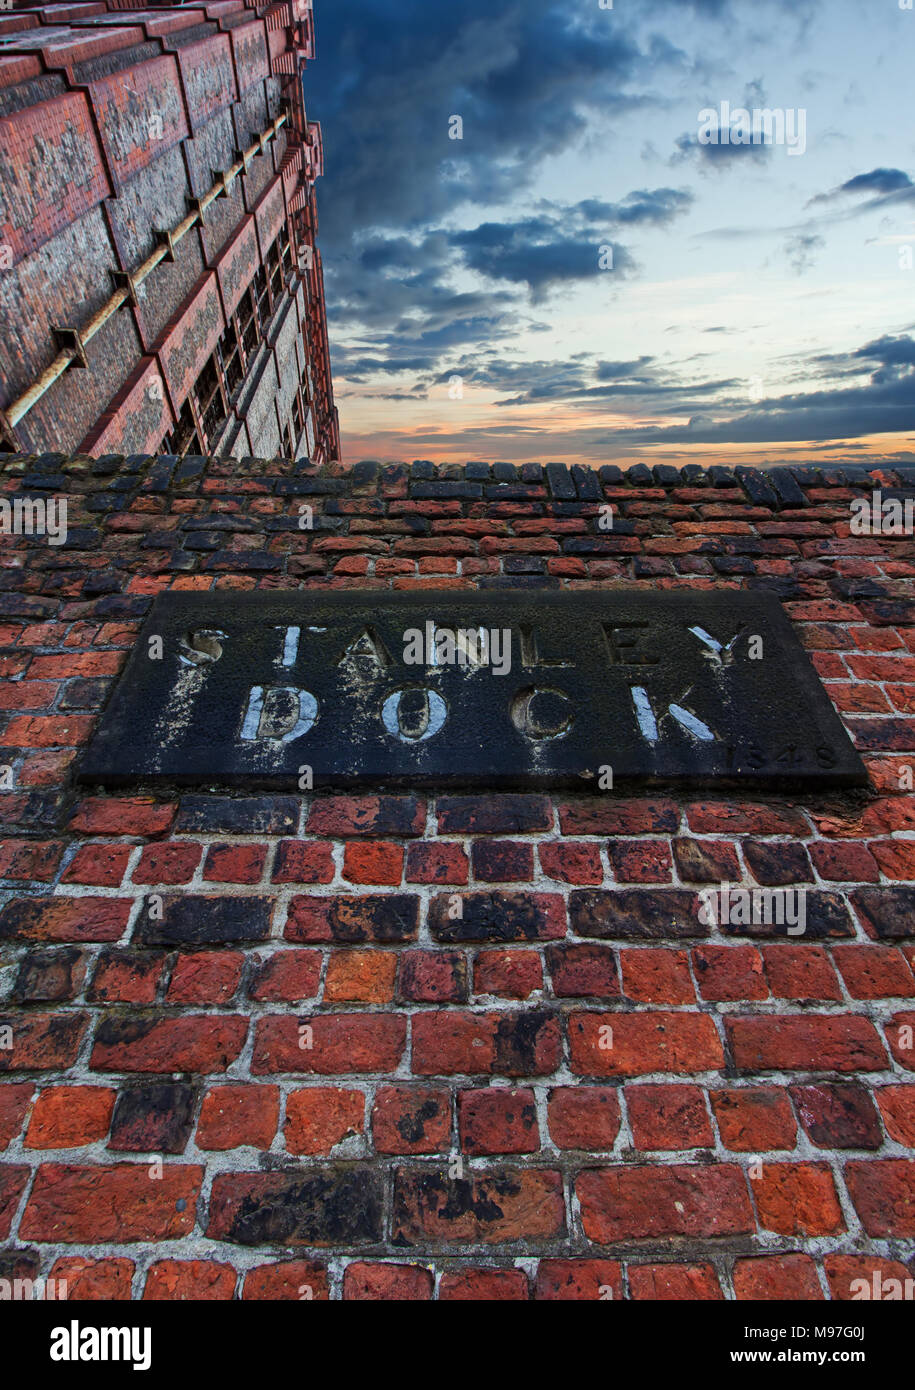 Stanley Dock tobacco warehouse in Liverpool UK. Stock Photo